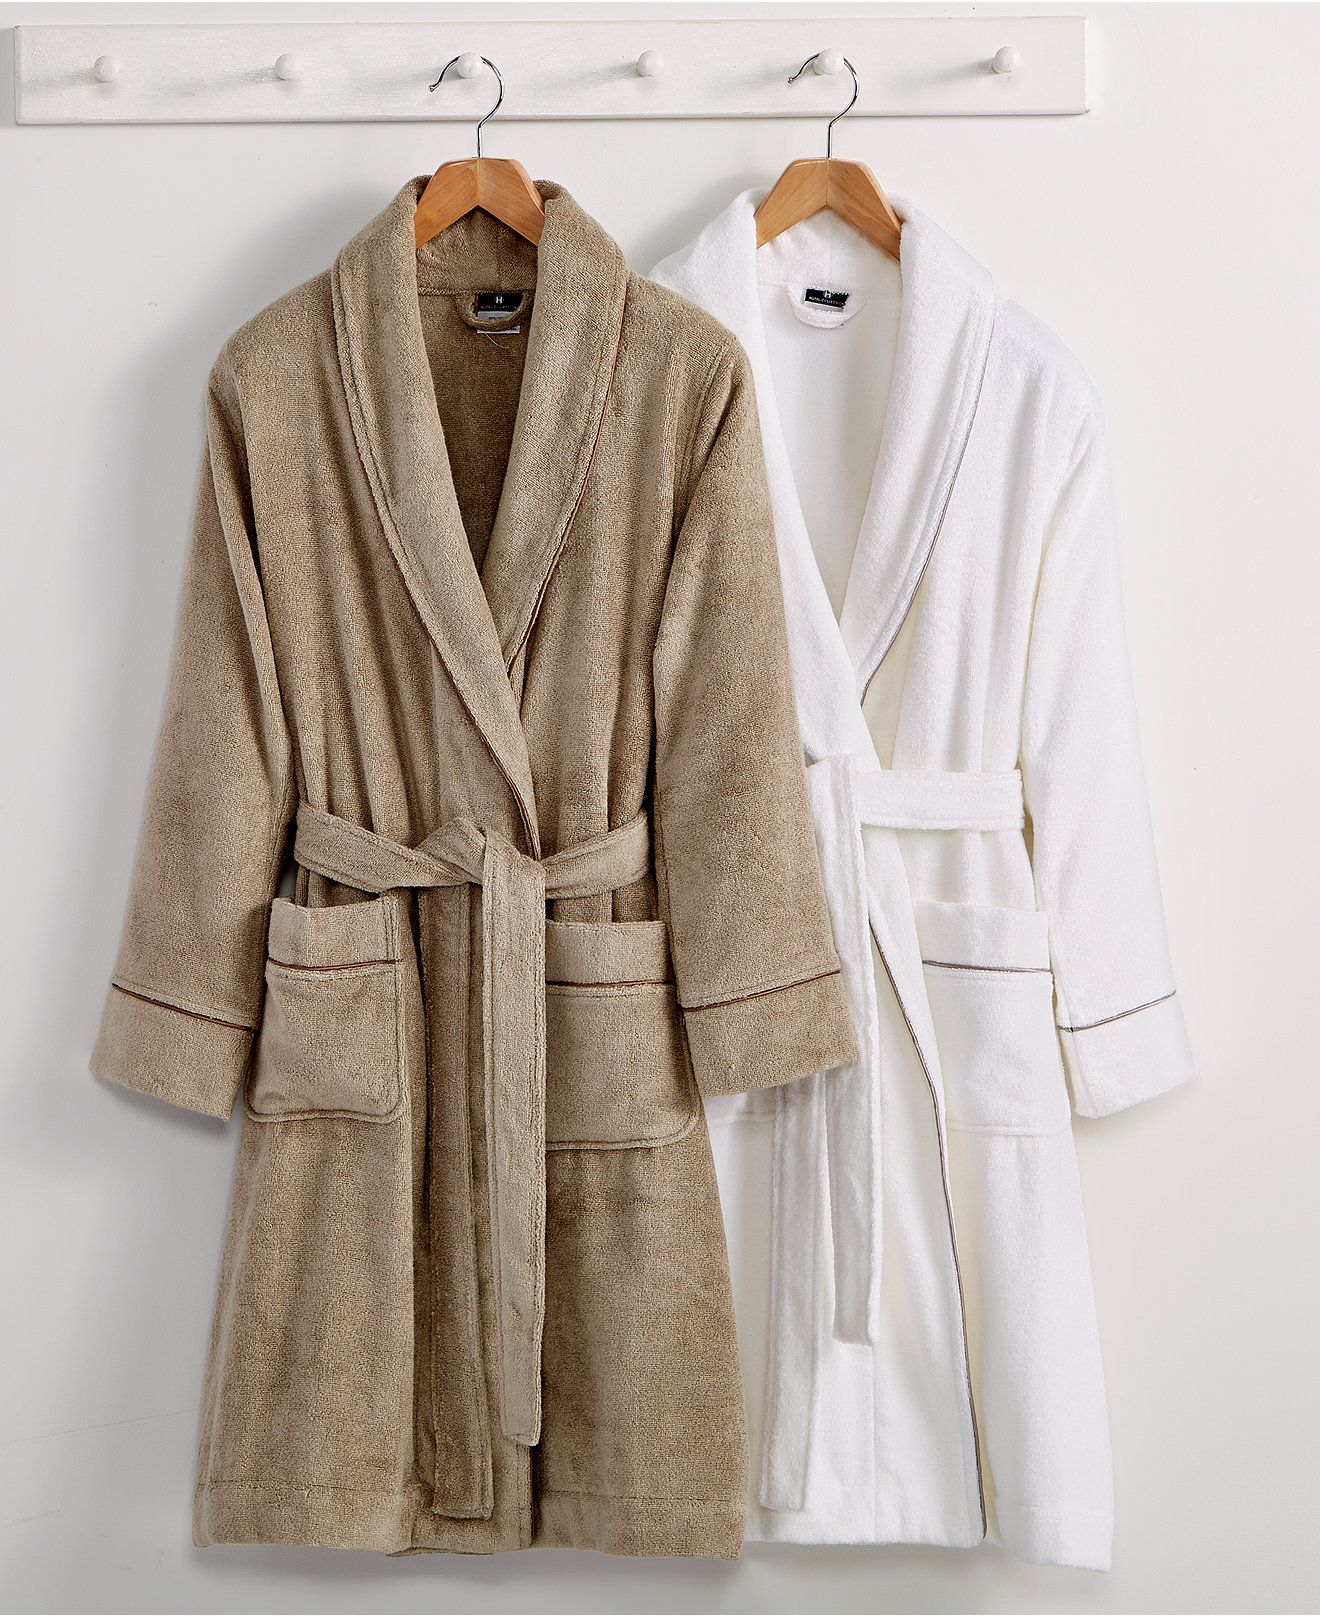 Definitely need a bathrobe that is NOT mint green. 39c4362a7